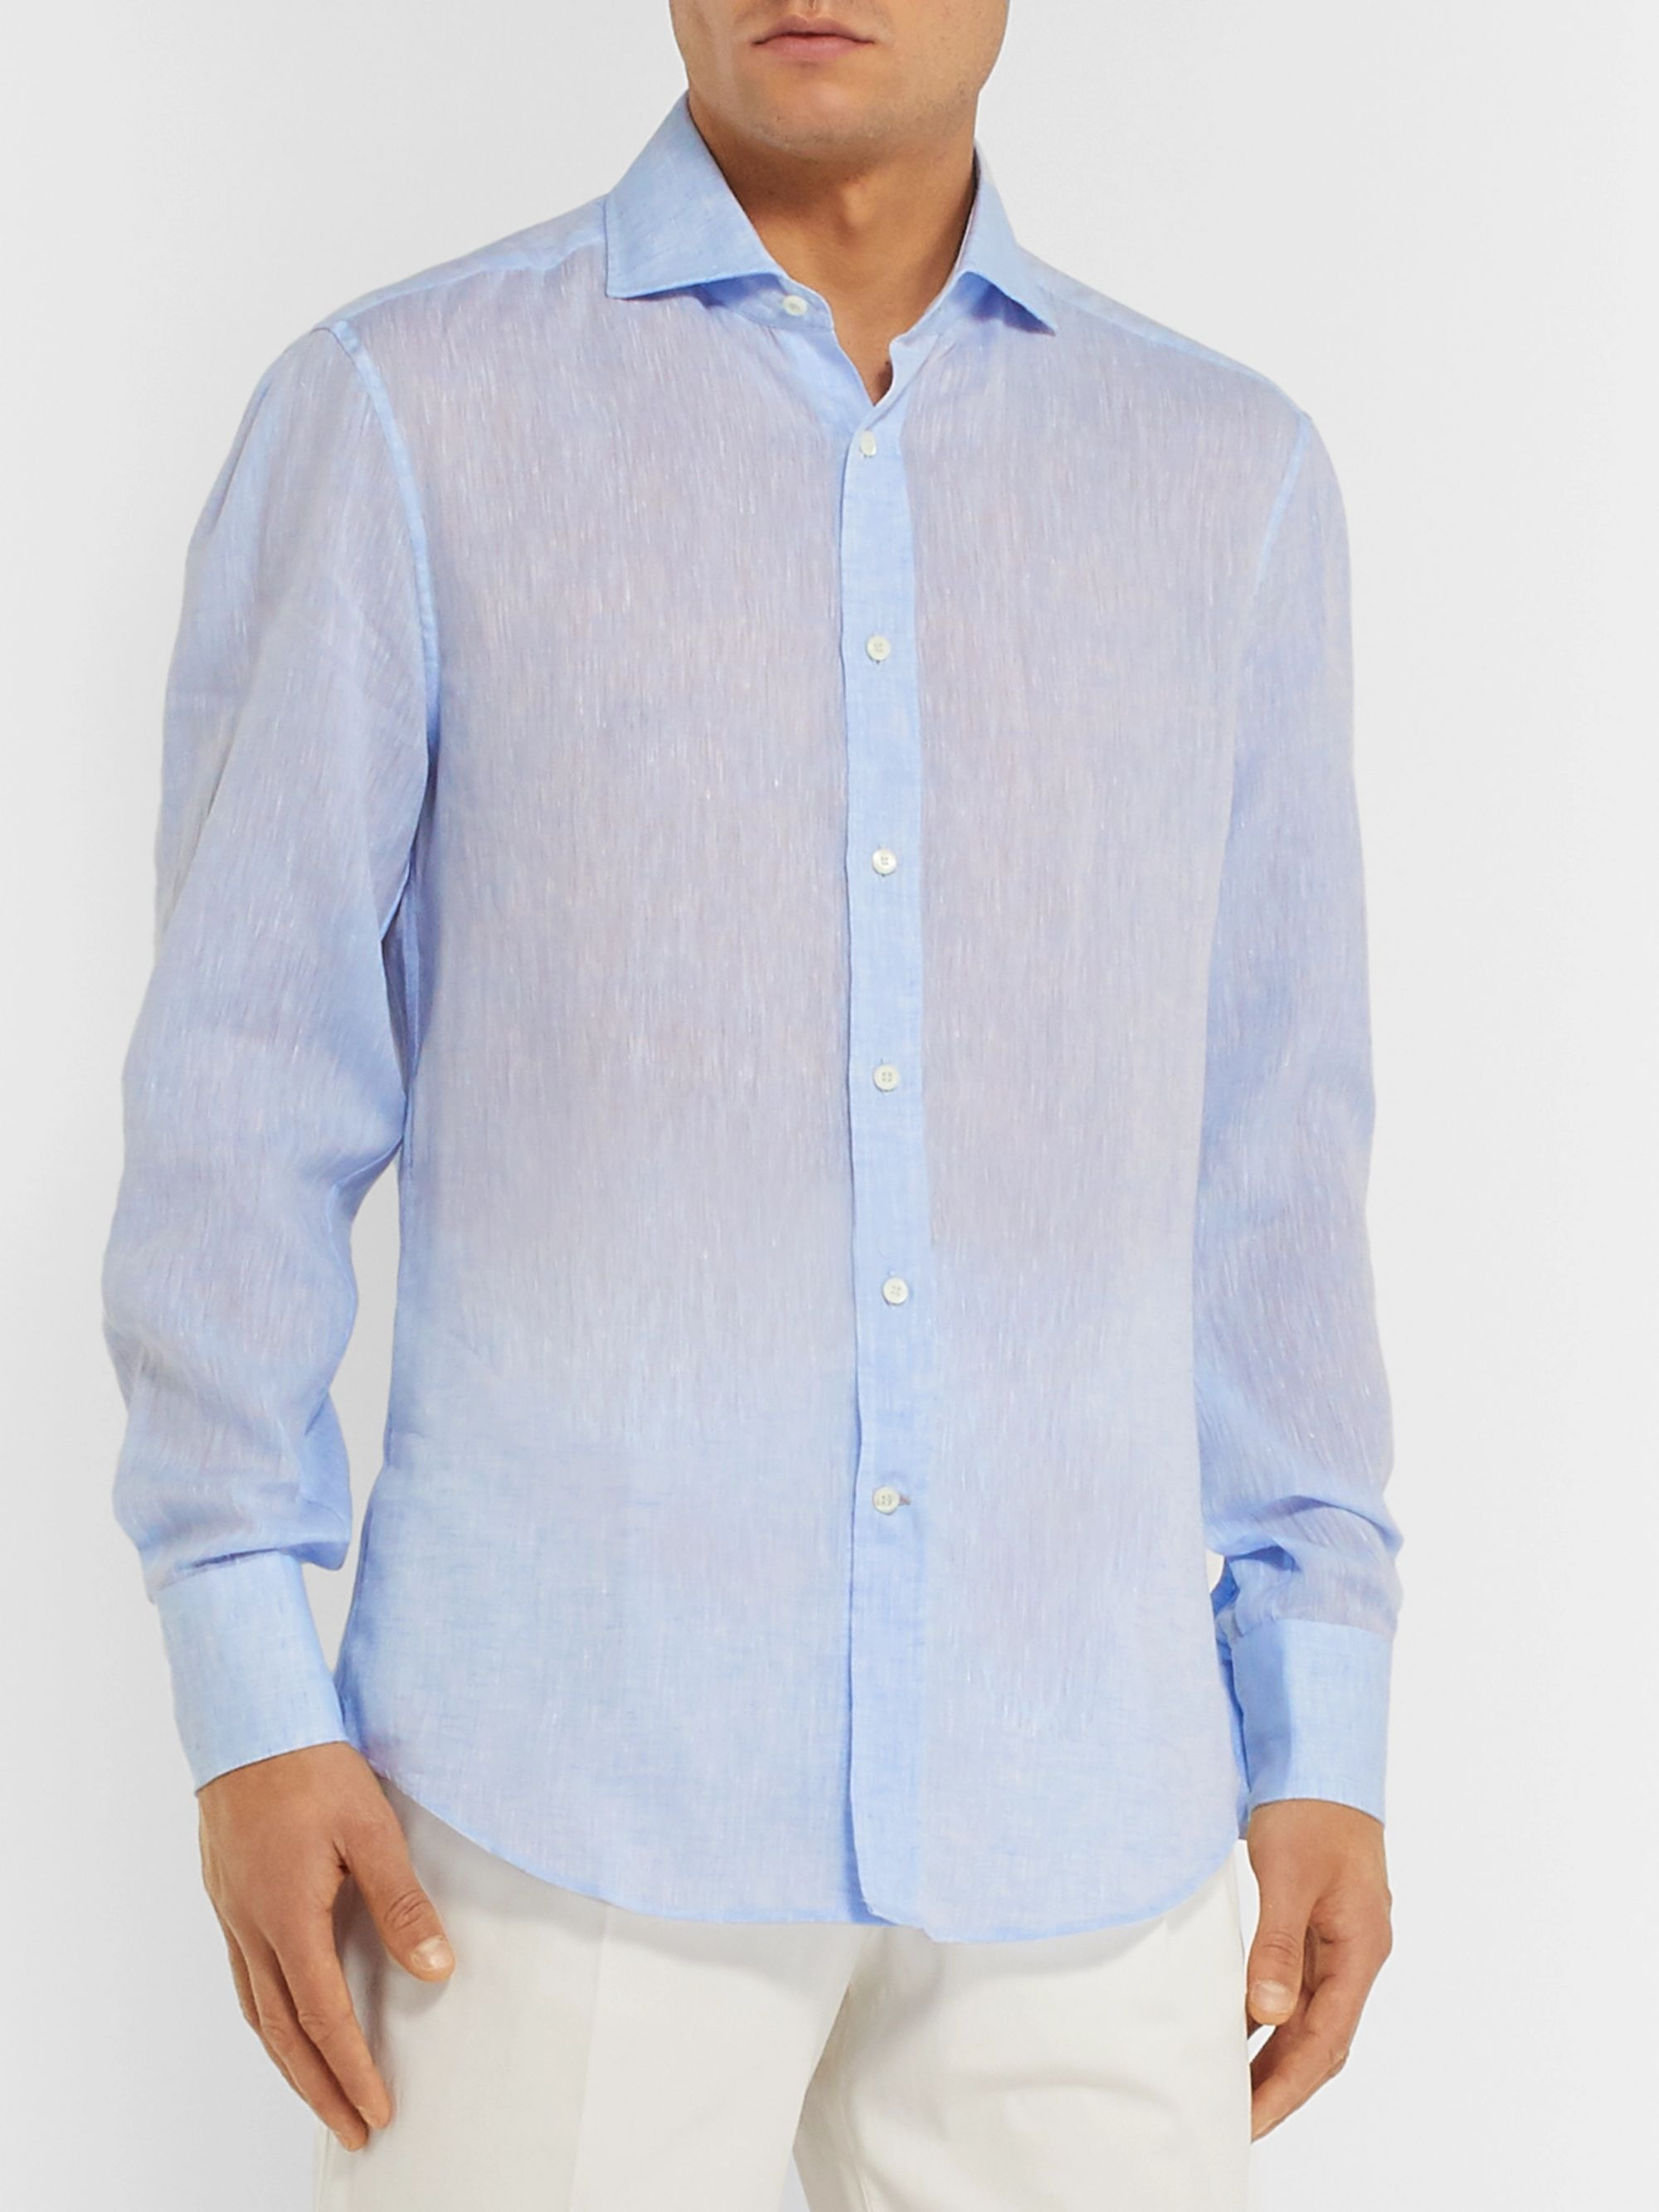 Brunello Cucinelli Slim-Fit Cutaway-Collar Mélange Linen Shirt